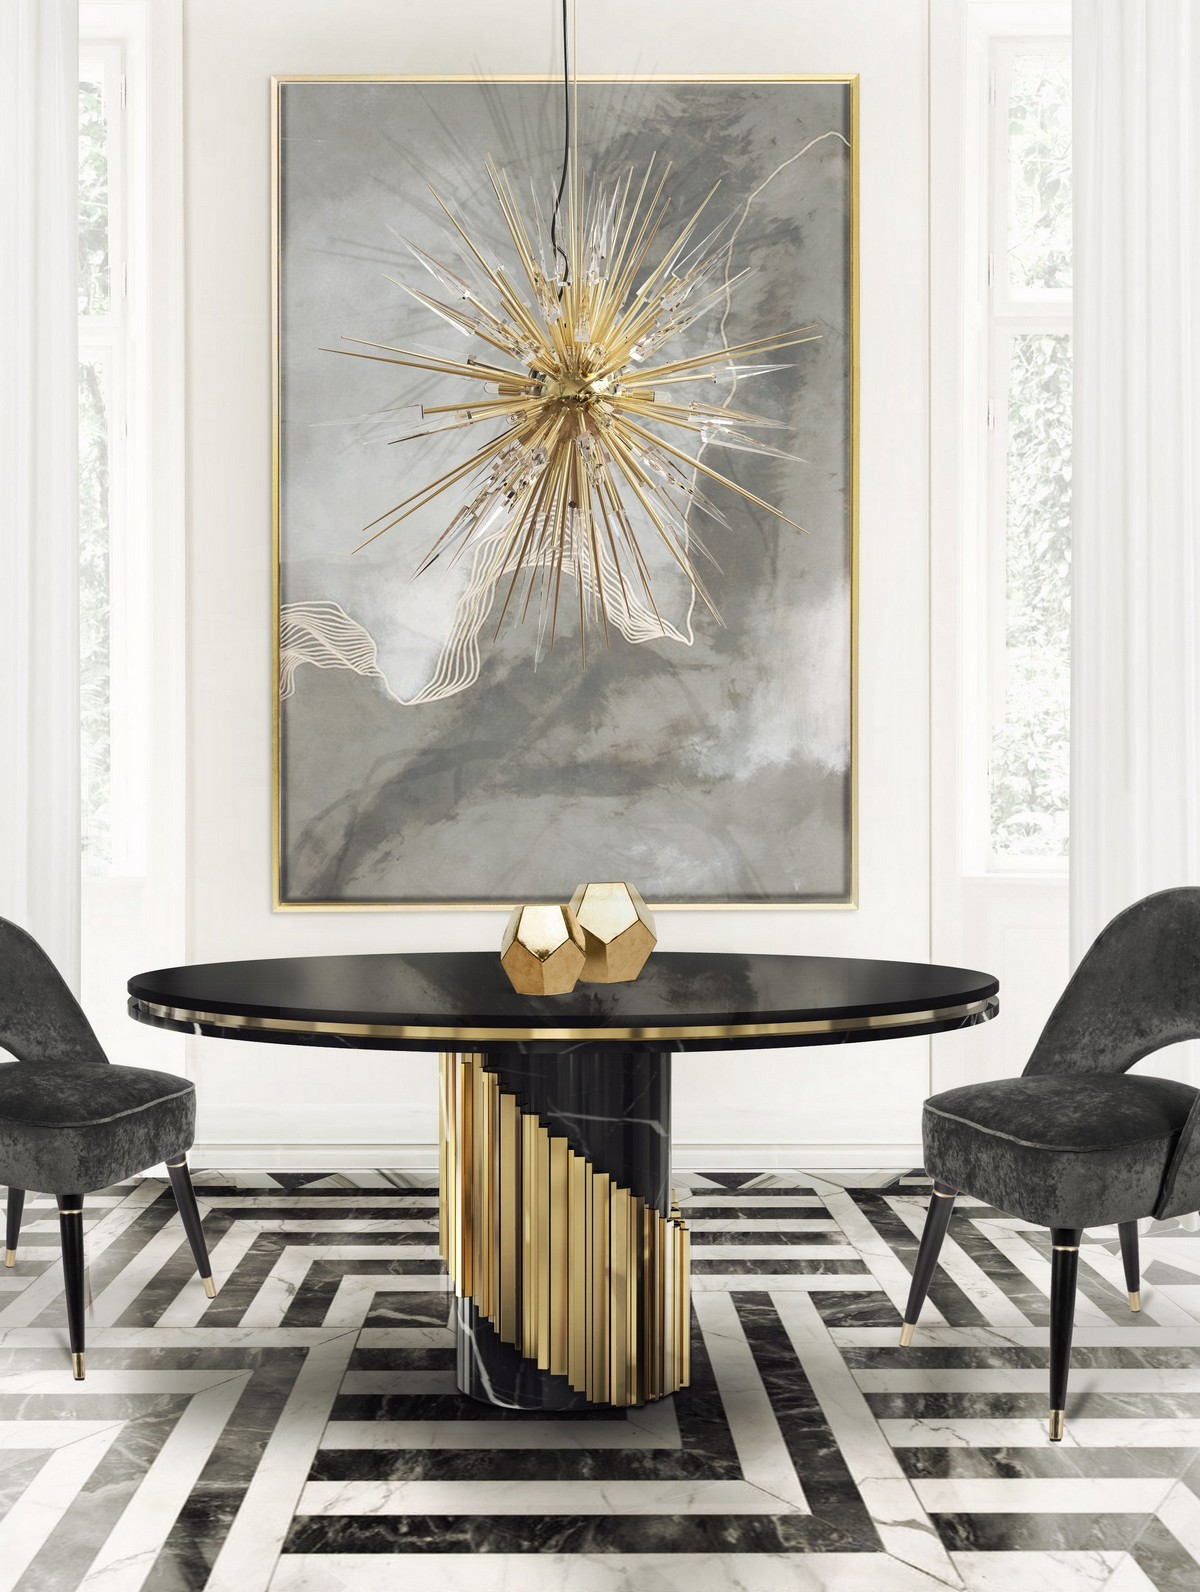 Artistic Dining Table Ideas For An Exquisite Dining Room Decor dining table ideas Artistic Dining Table Ideas For An Exquisite Dining Room Decor littus